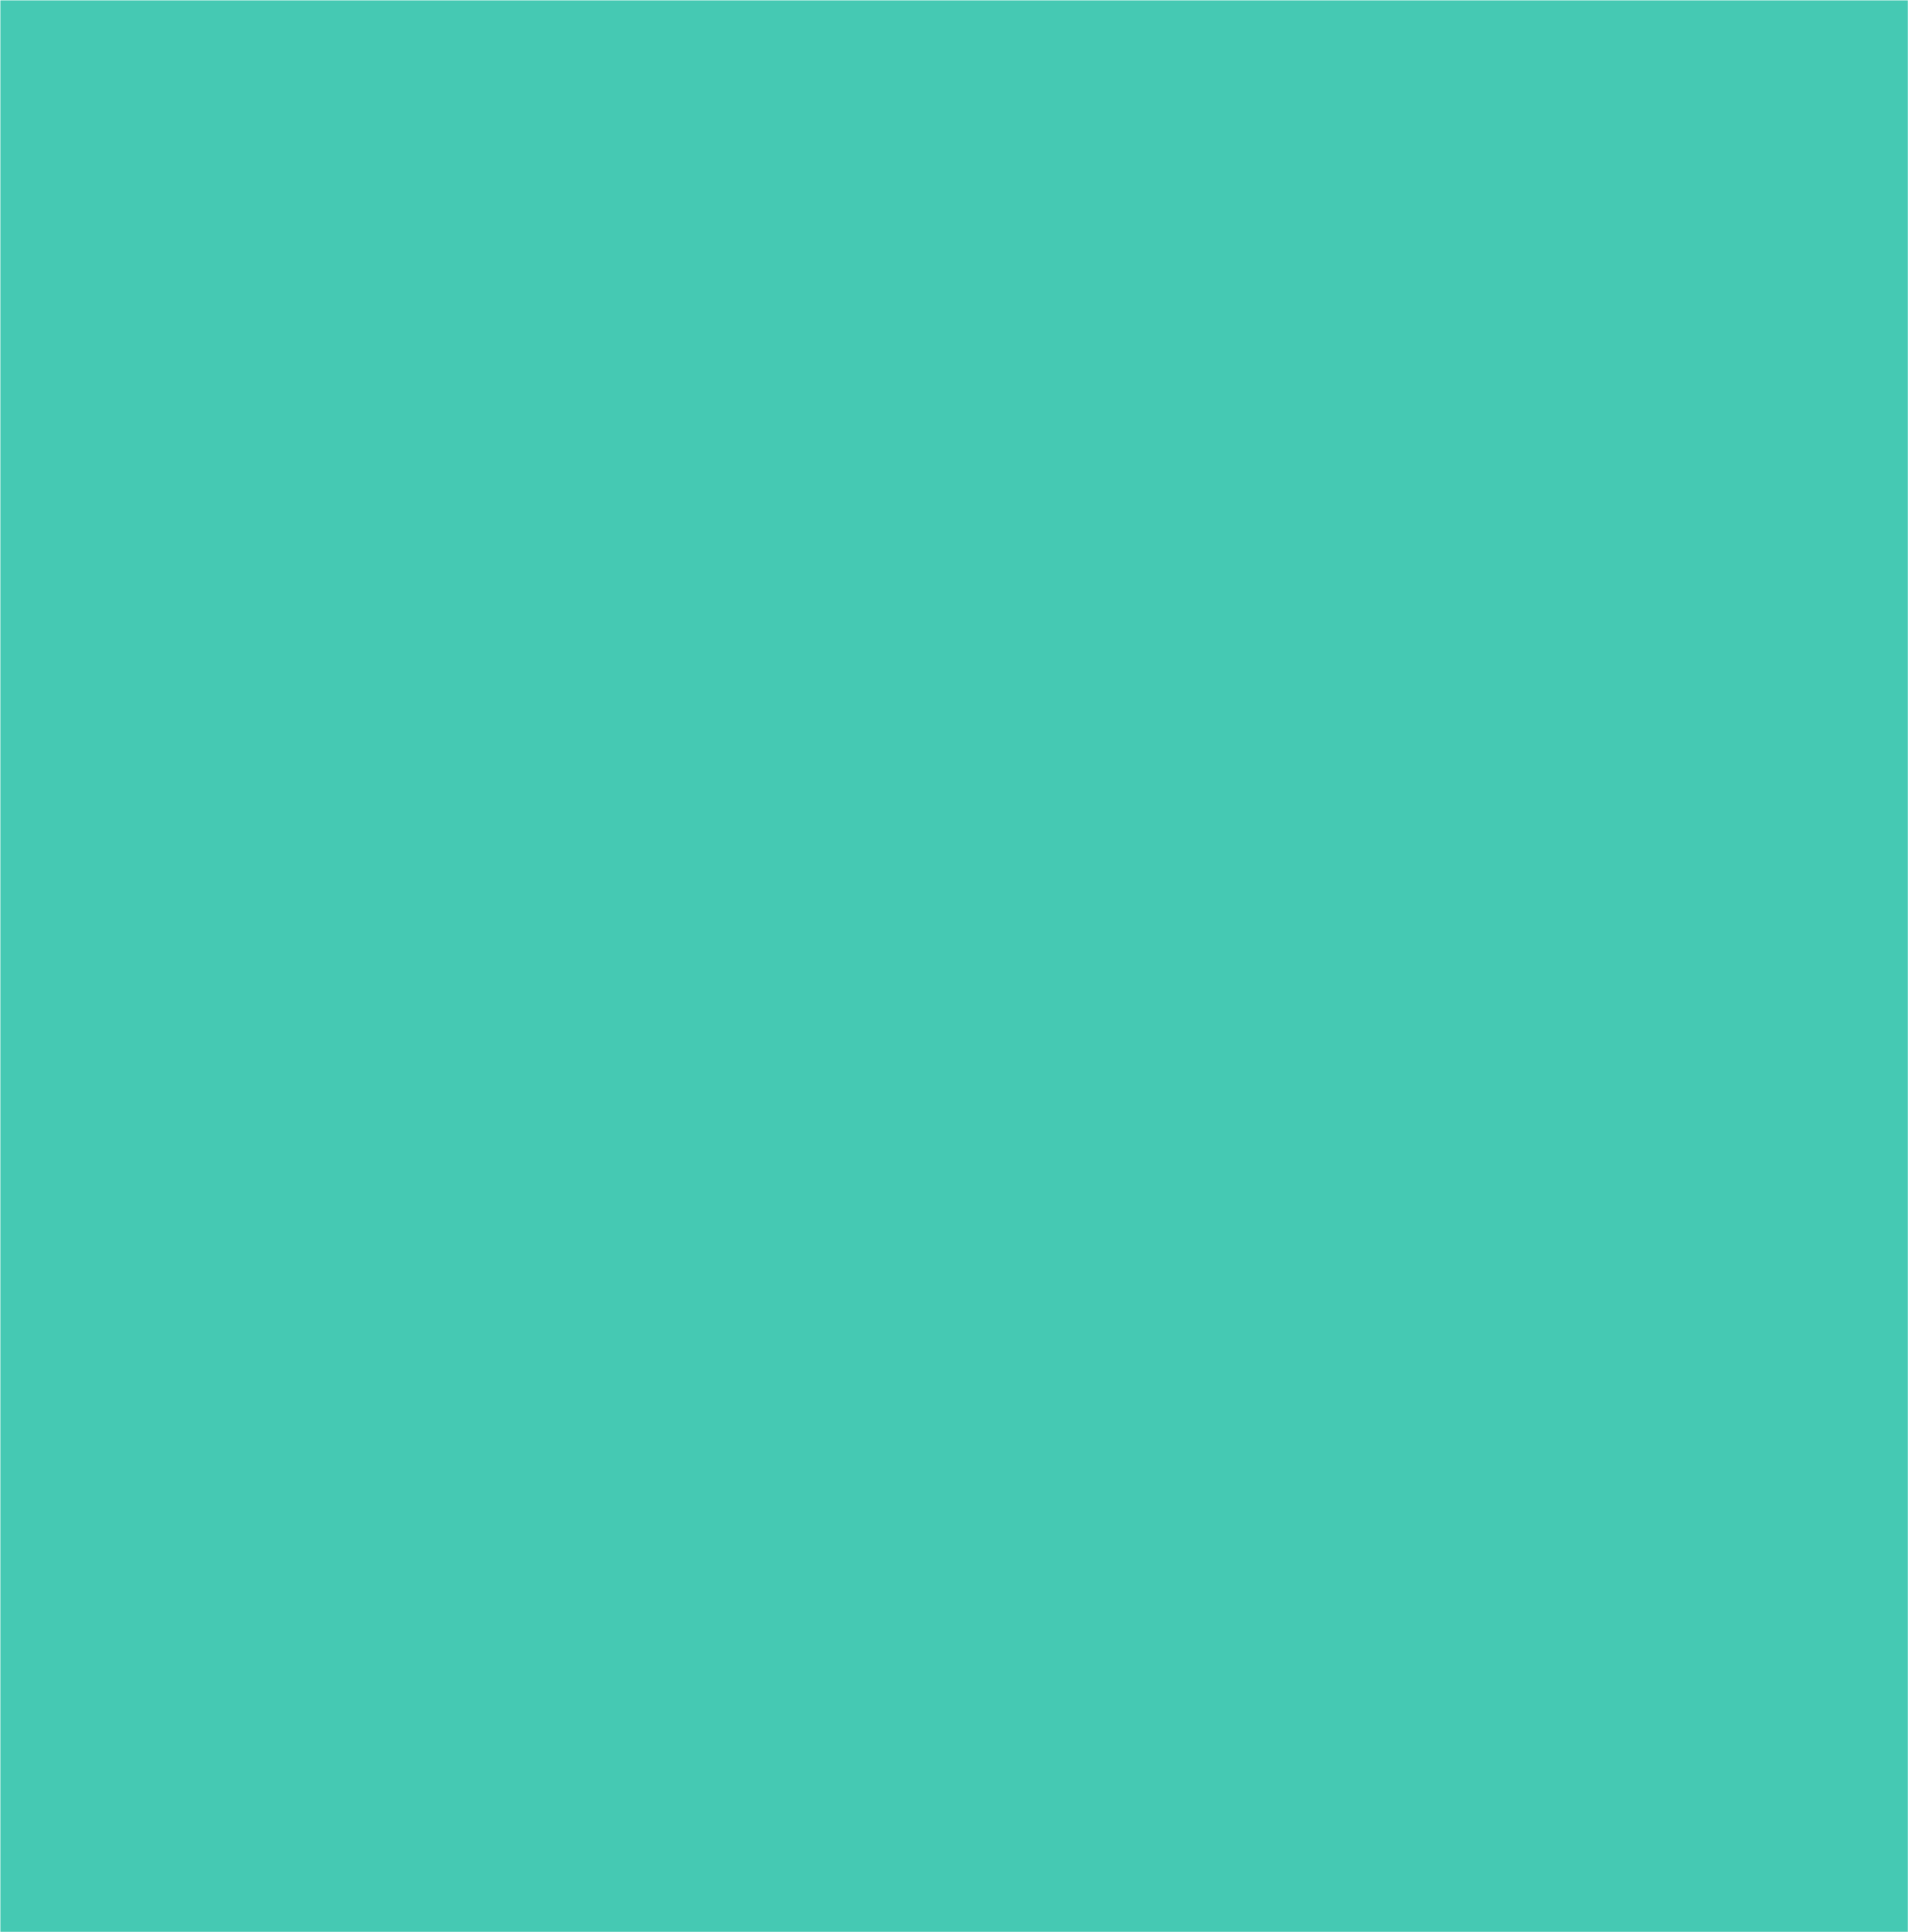 Sample of teal, one of the accent colors.